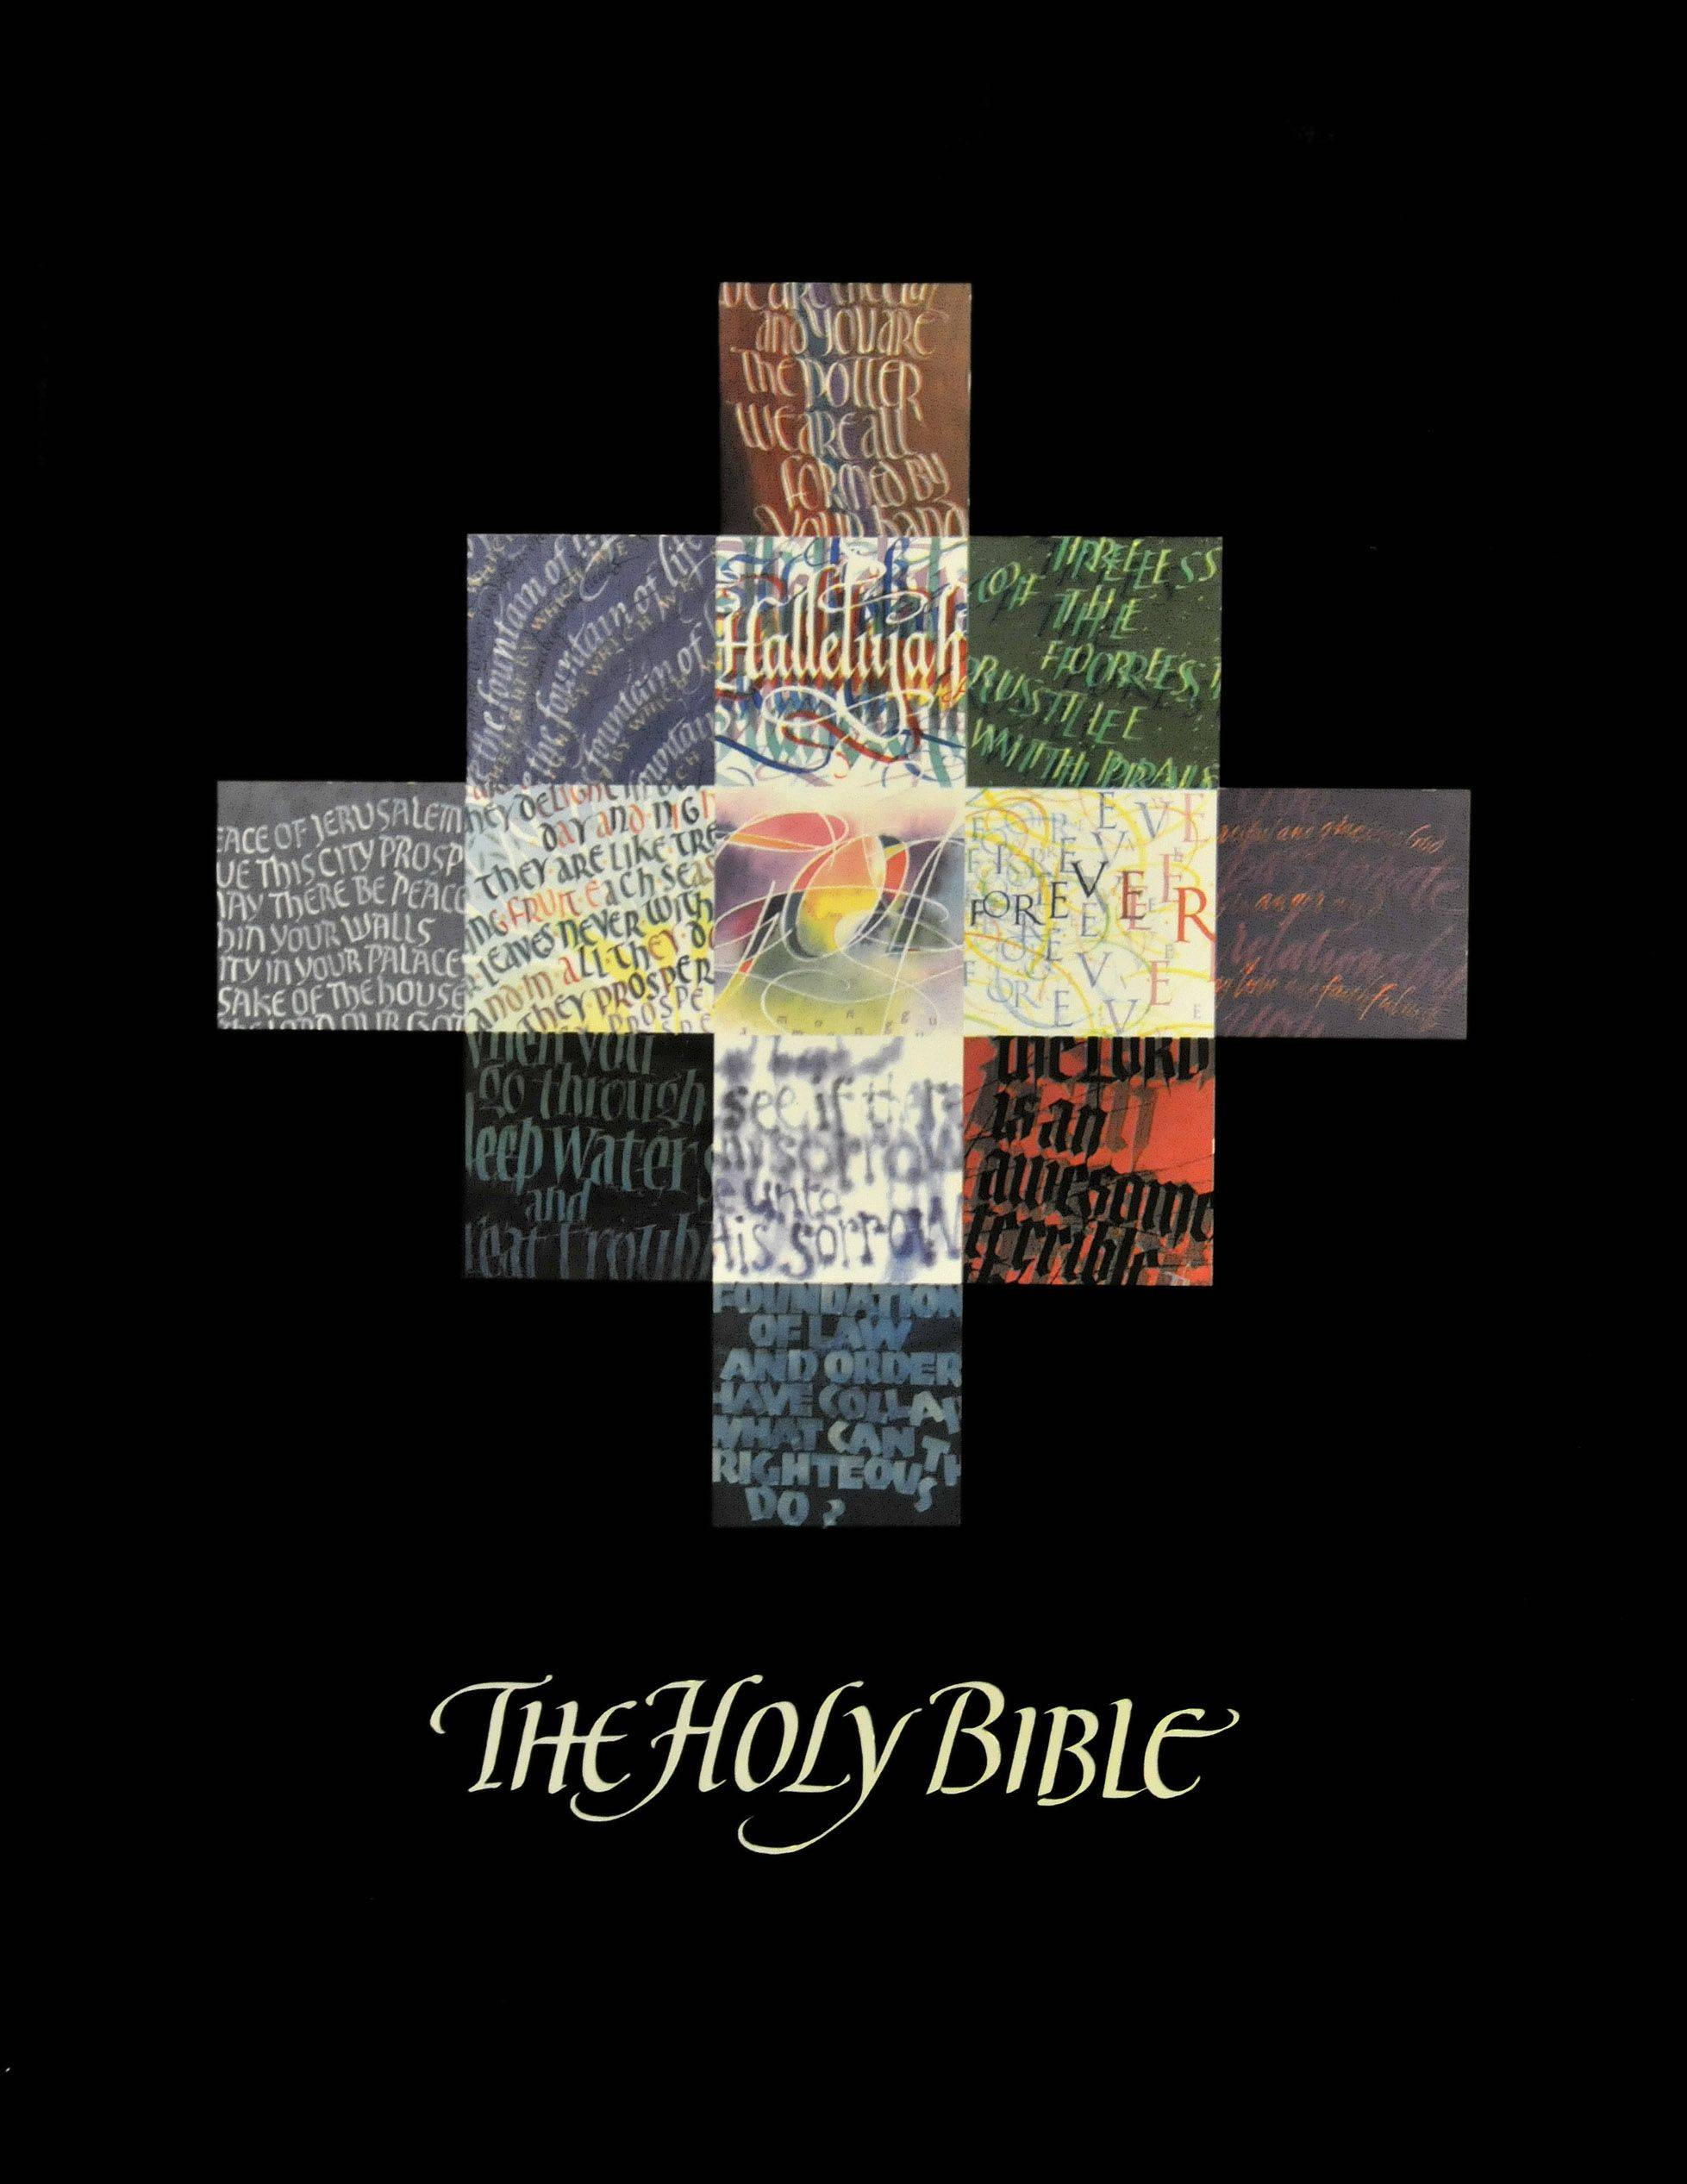 Timothy Botts did the cover illustration for his calligraphy edition of the Bible, which is no longer in print.